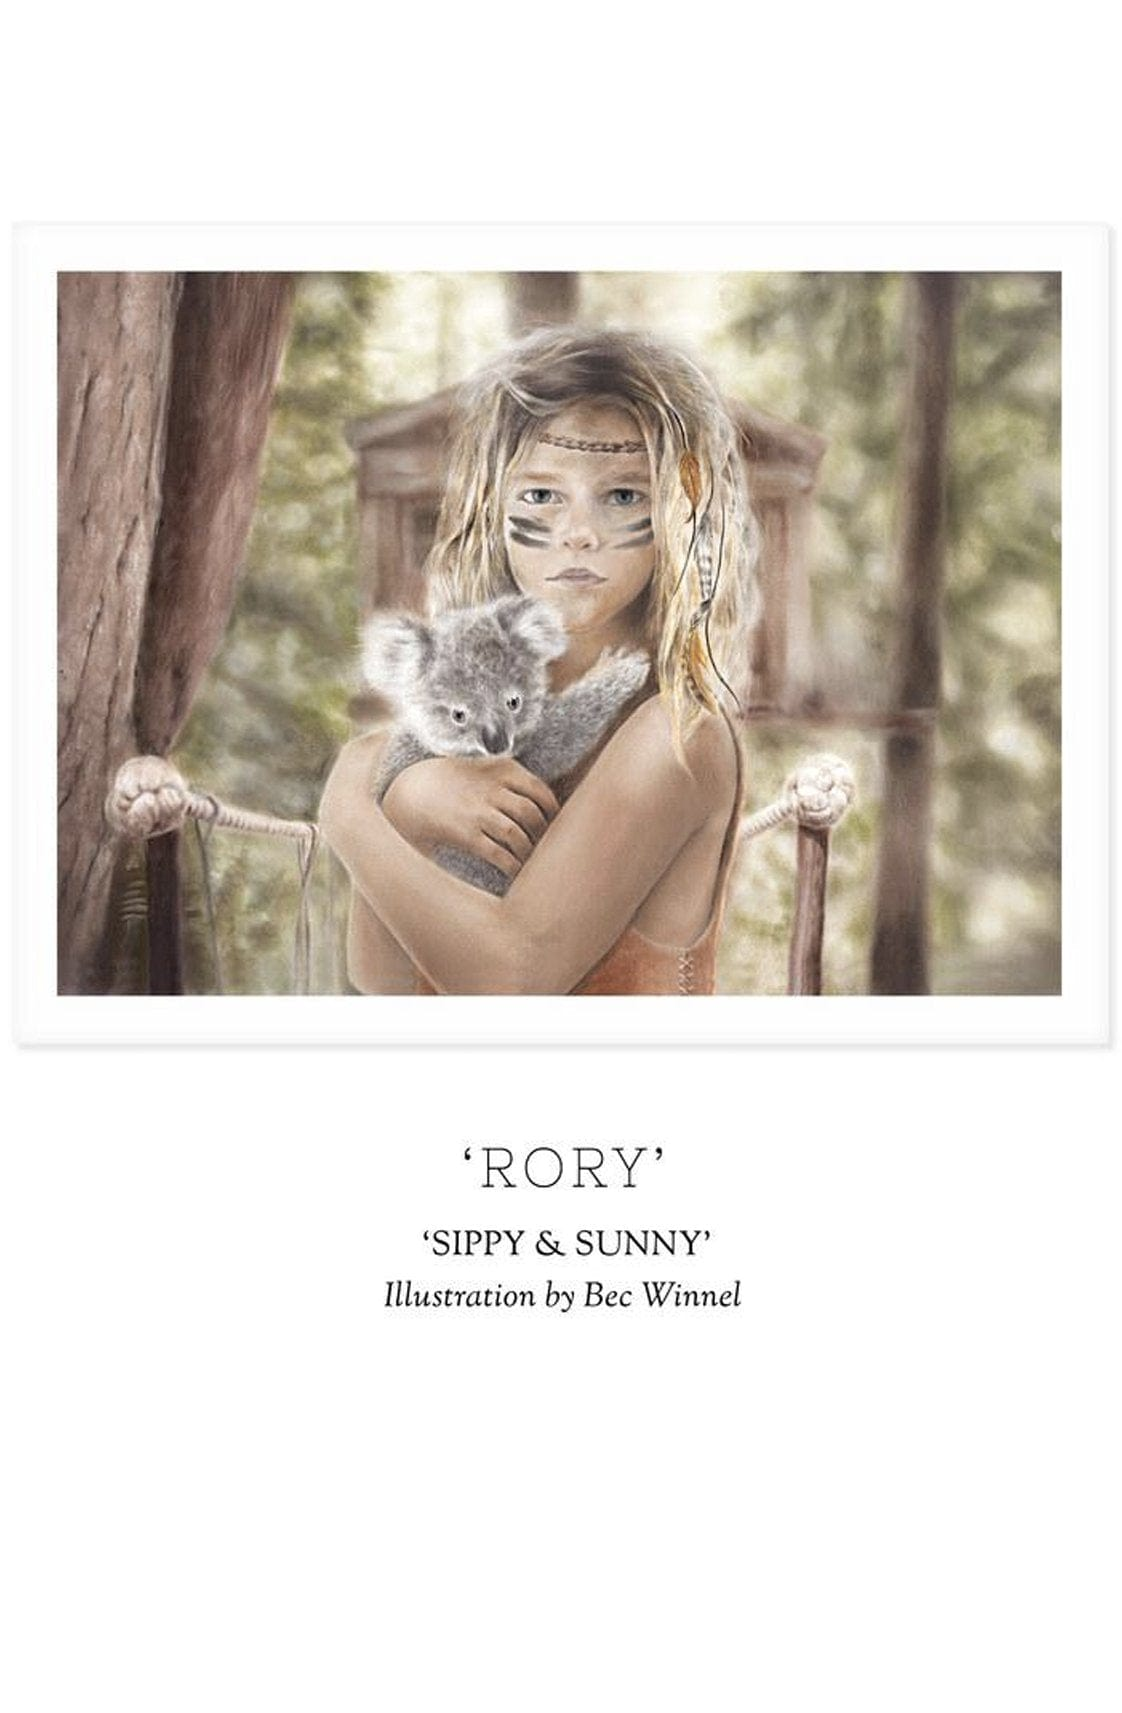 Unclebearskin Productions, SIPPY & SUNNY - 'RORY' Print